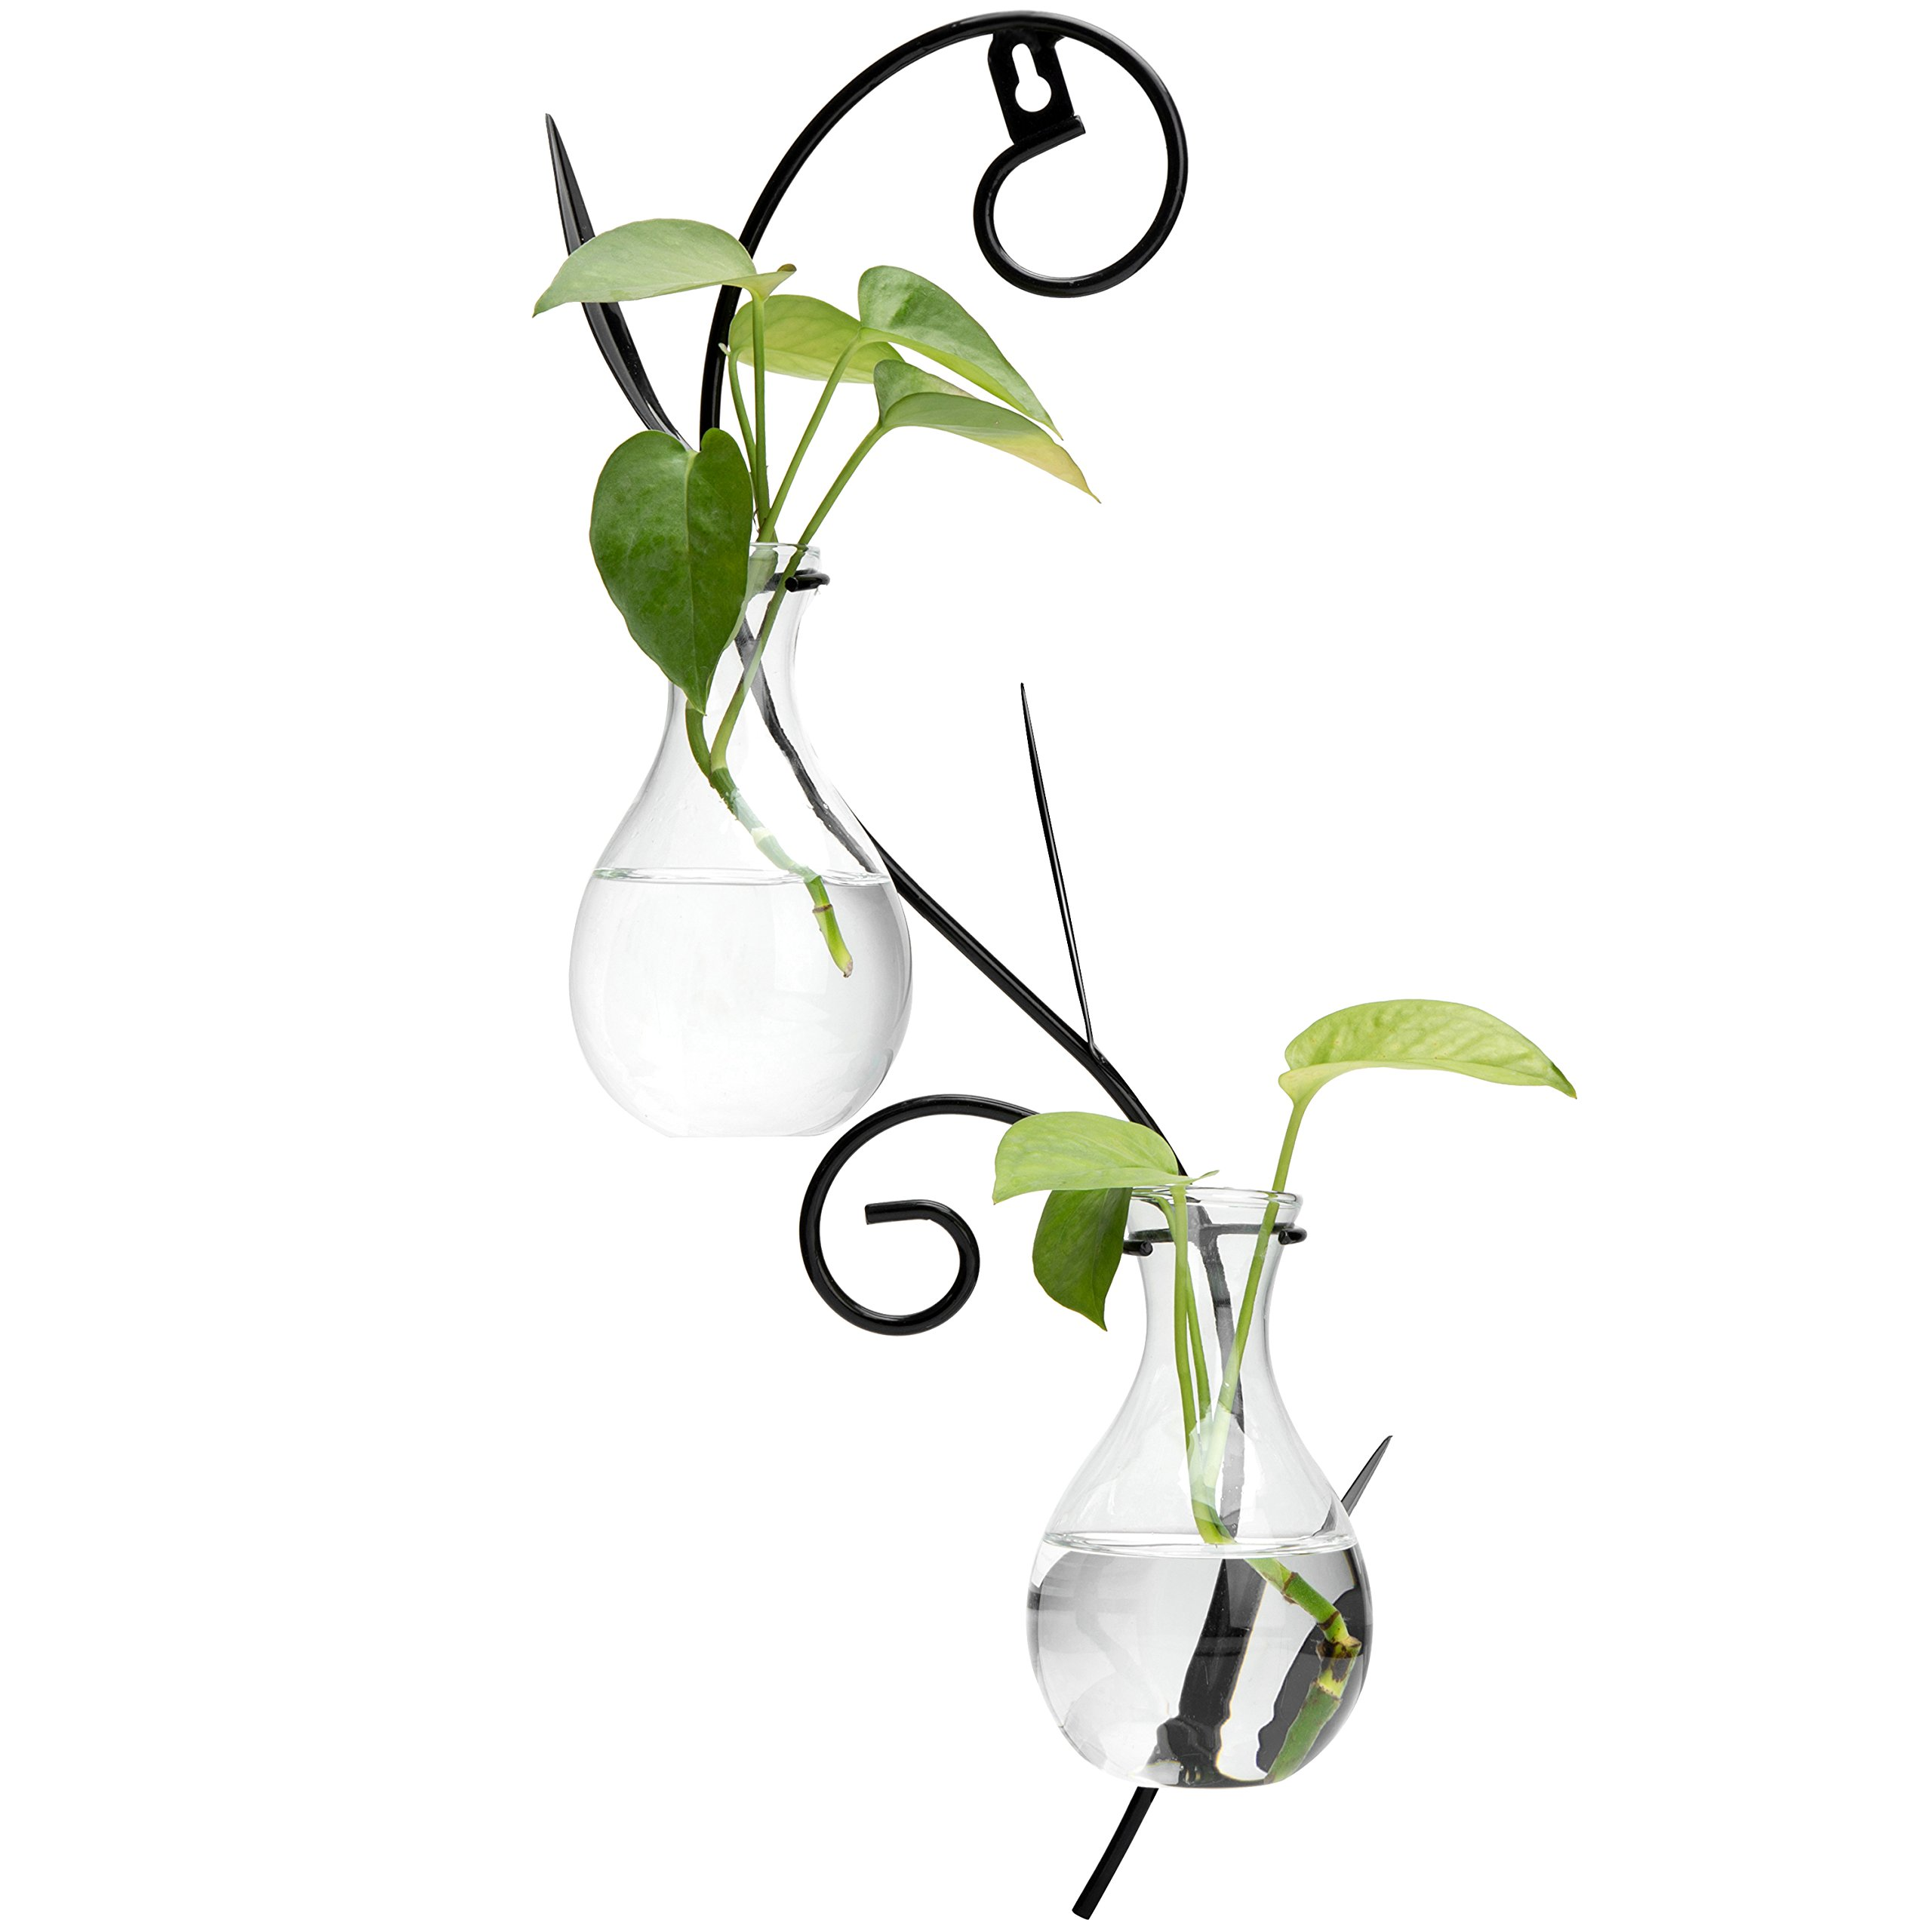 MyGift Decorative Wall-Mounted Scrollwork Metal Sconce with 2 Flower Glass Bulb Vases by MyGift